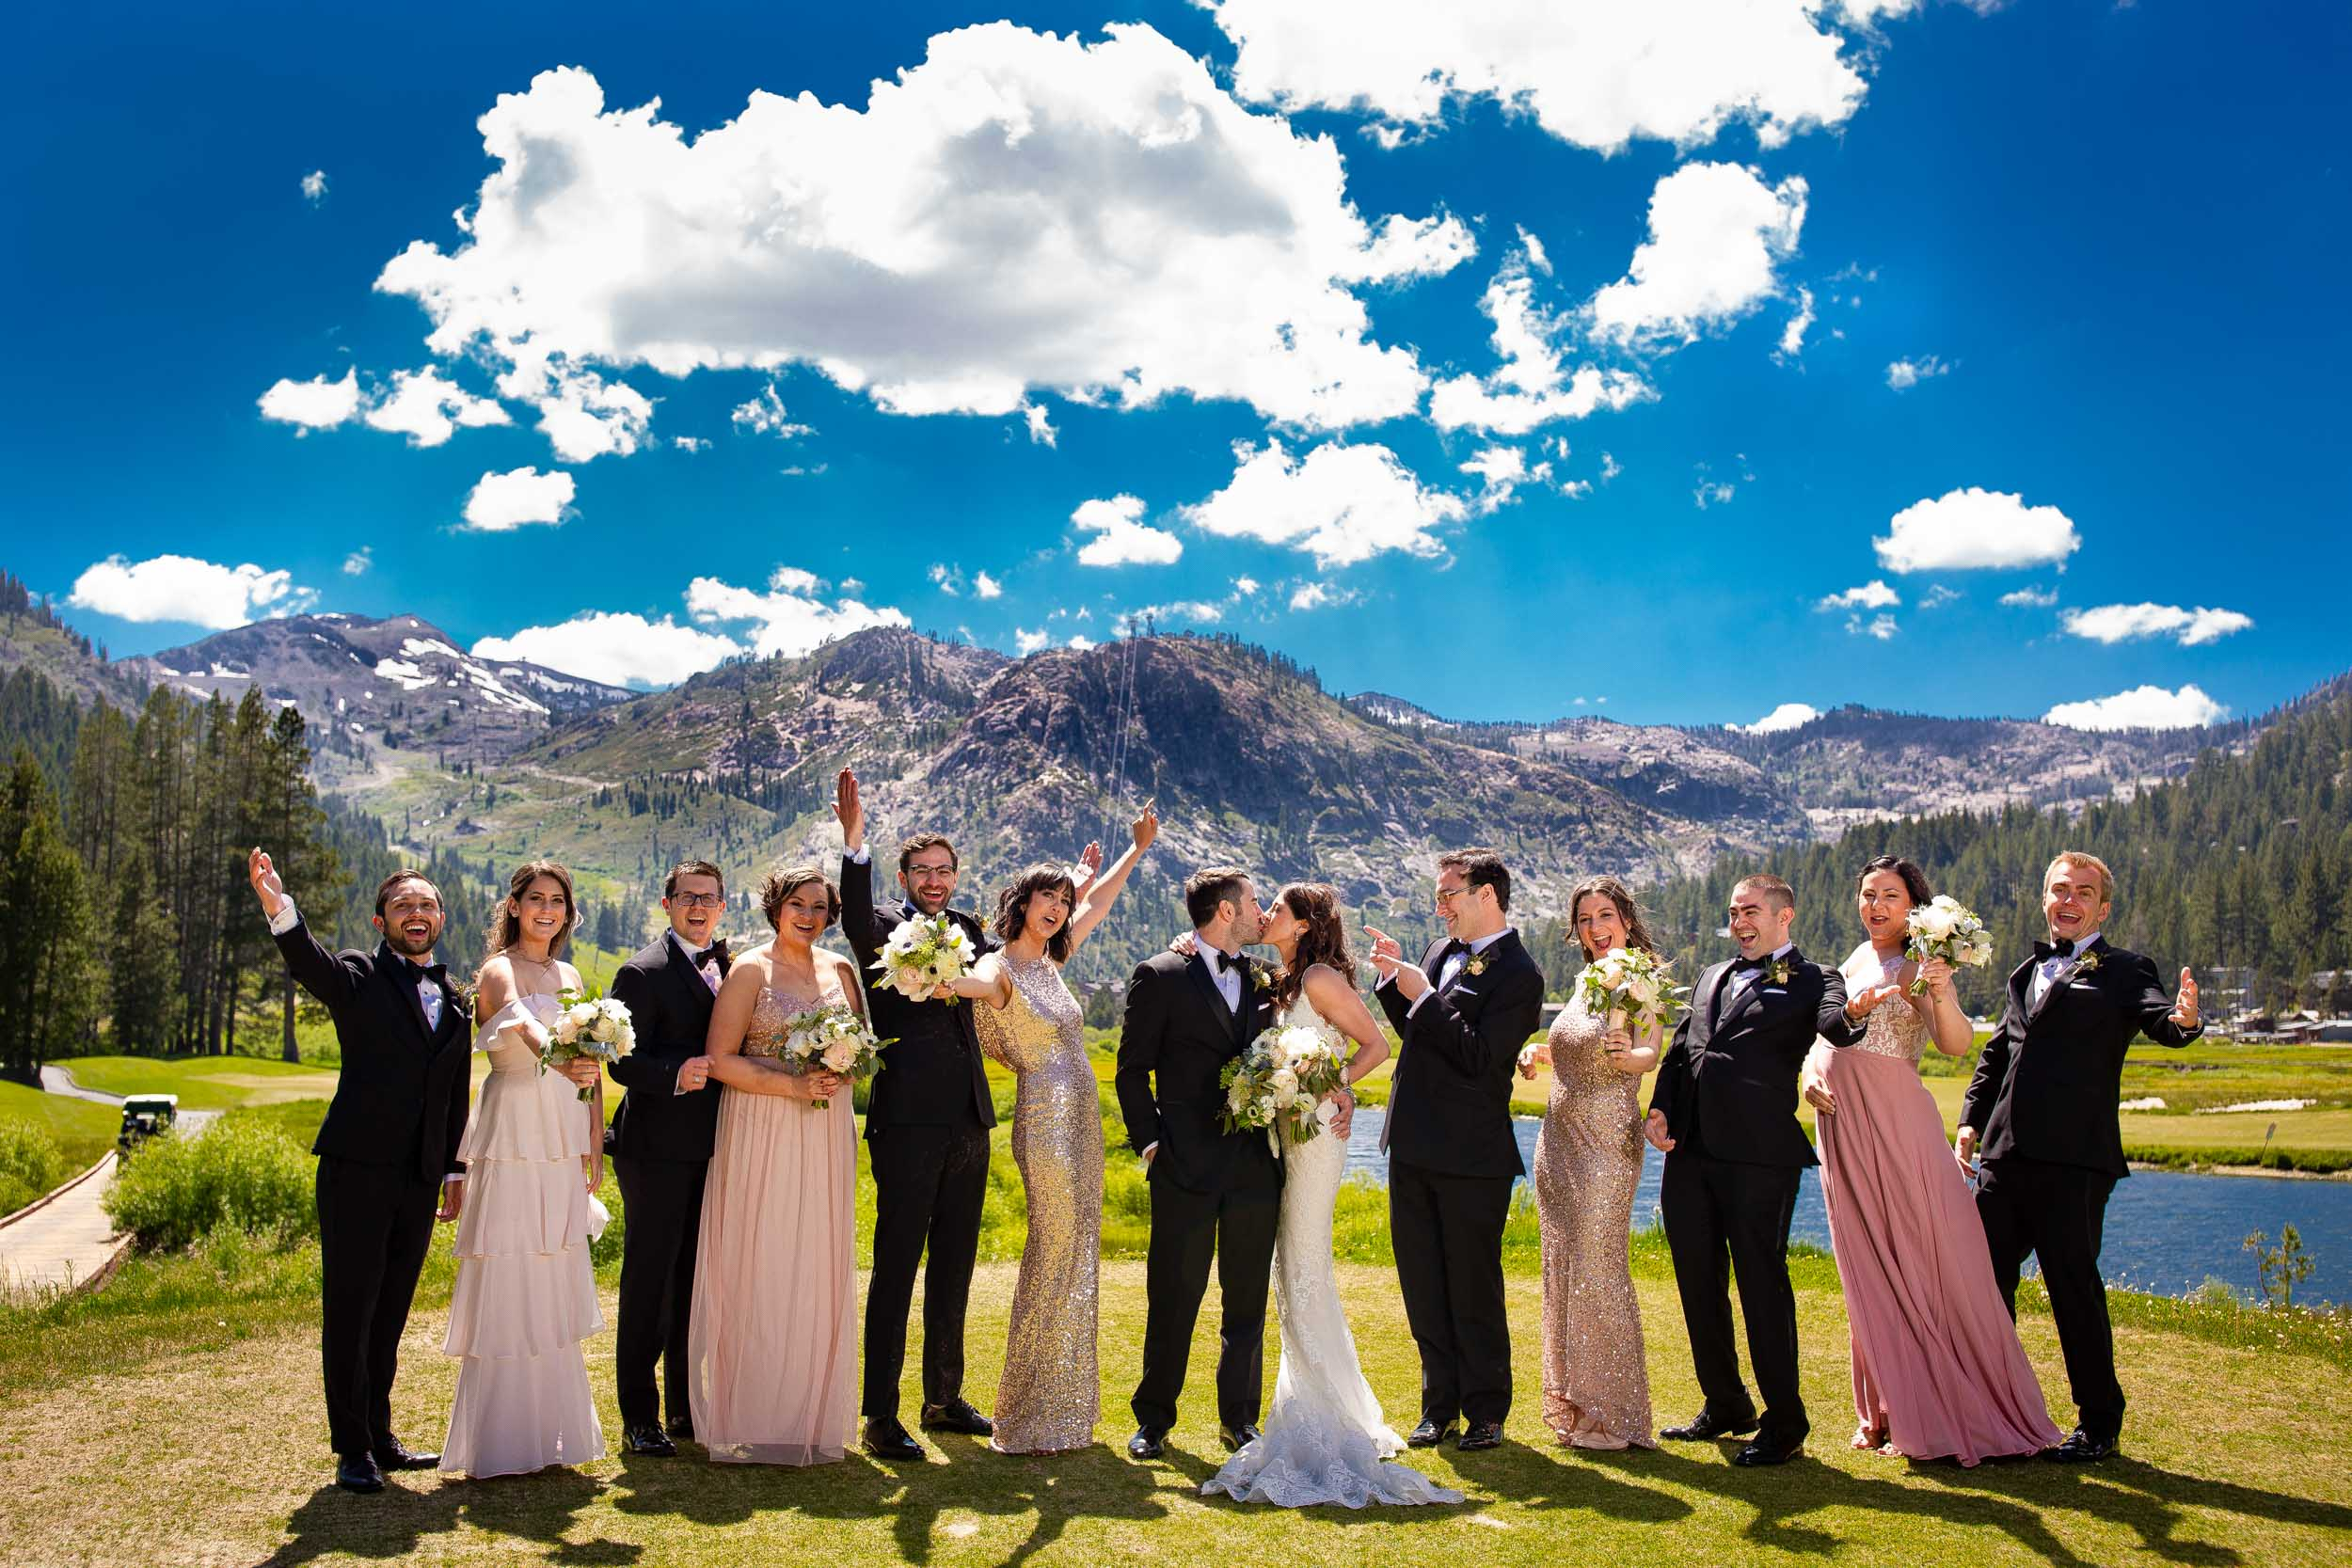 Bridal party photo at a Squaw Valley wedding in the Mountains of Lake Tahoe